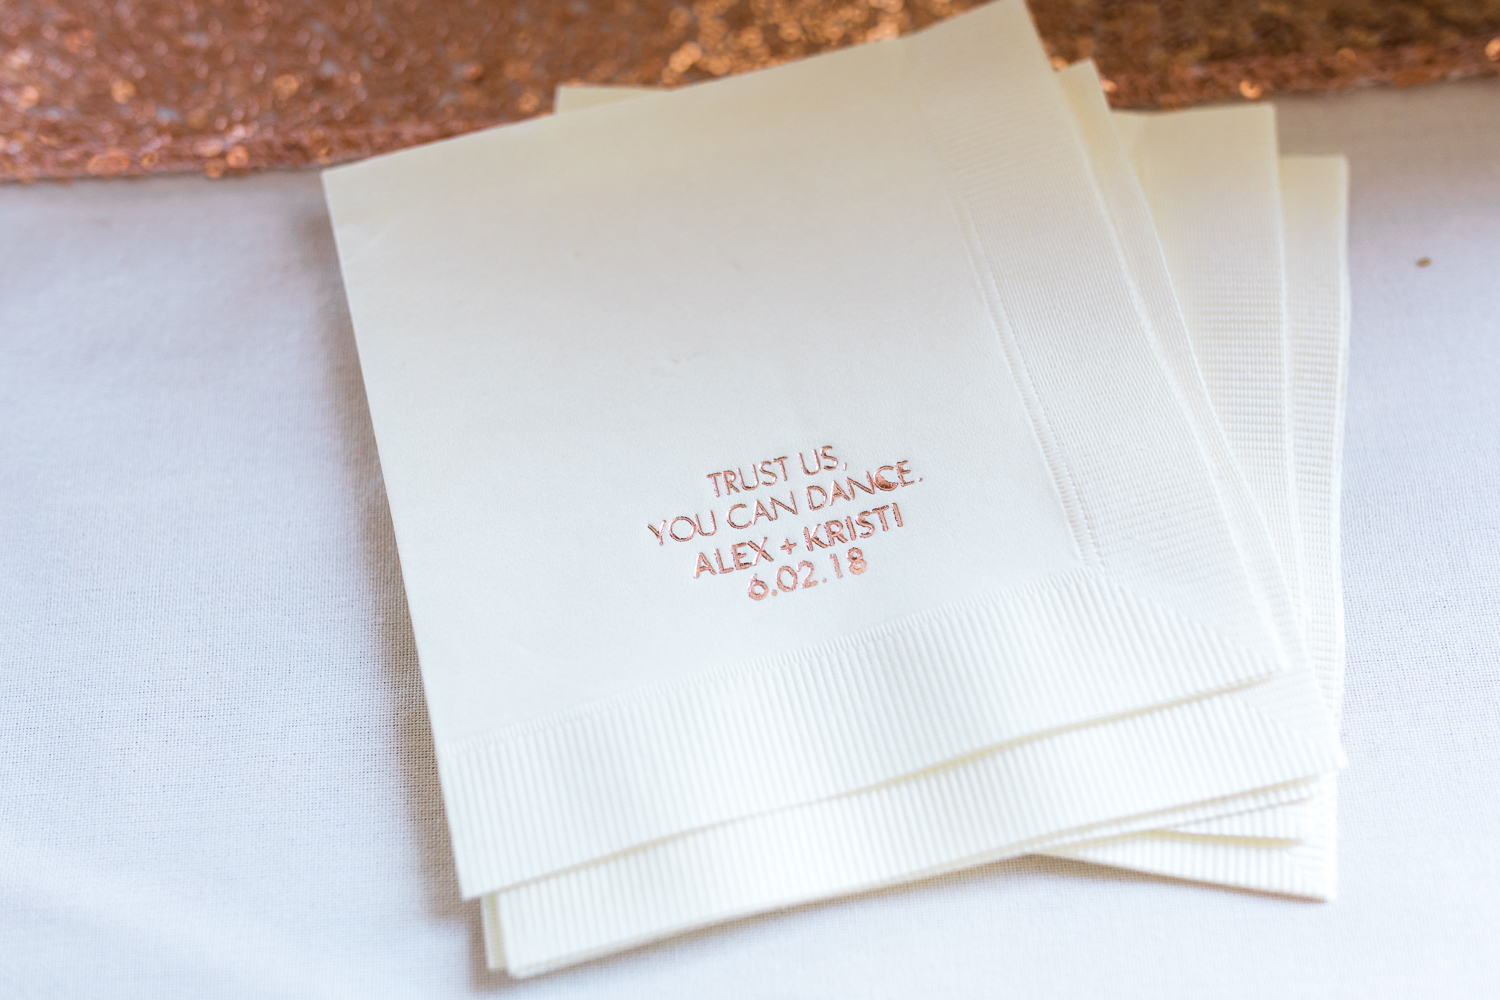 personalized napkins for a wedding